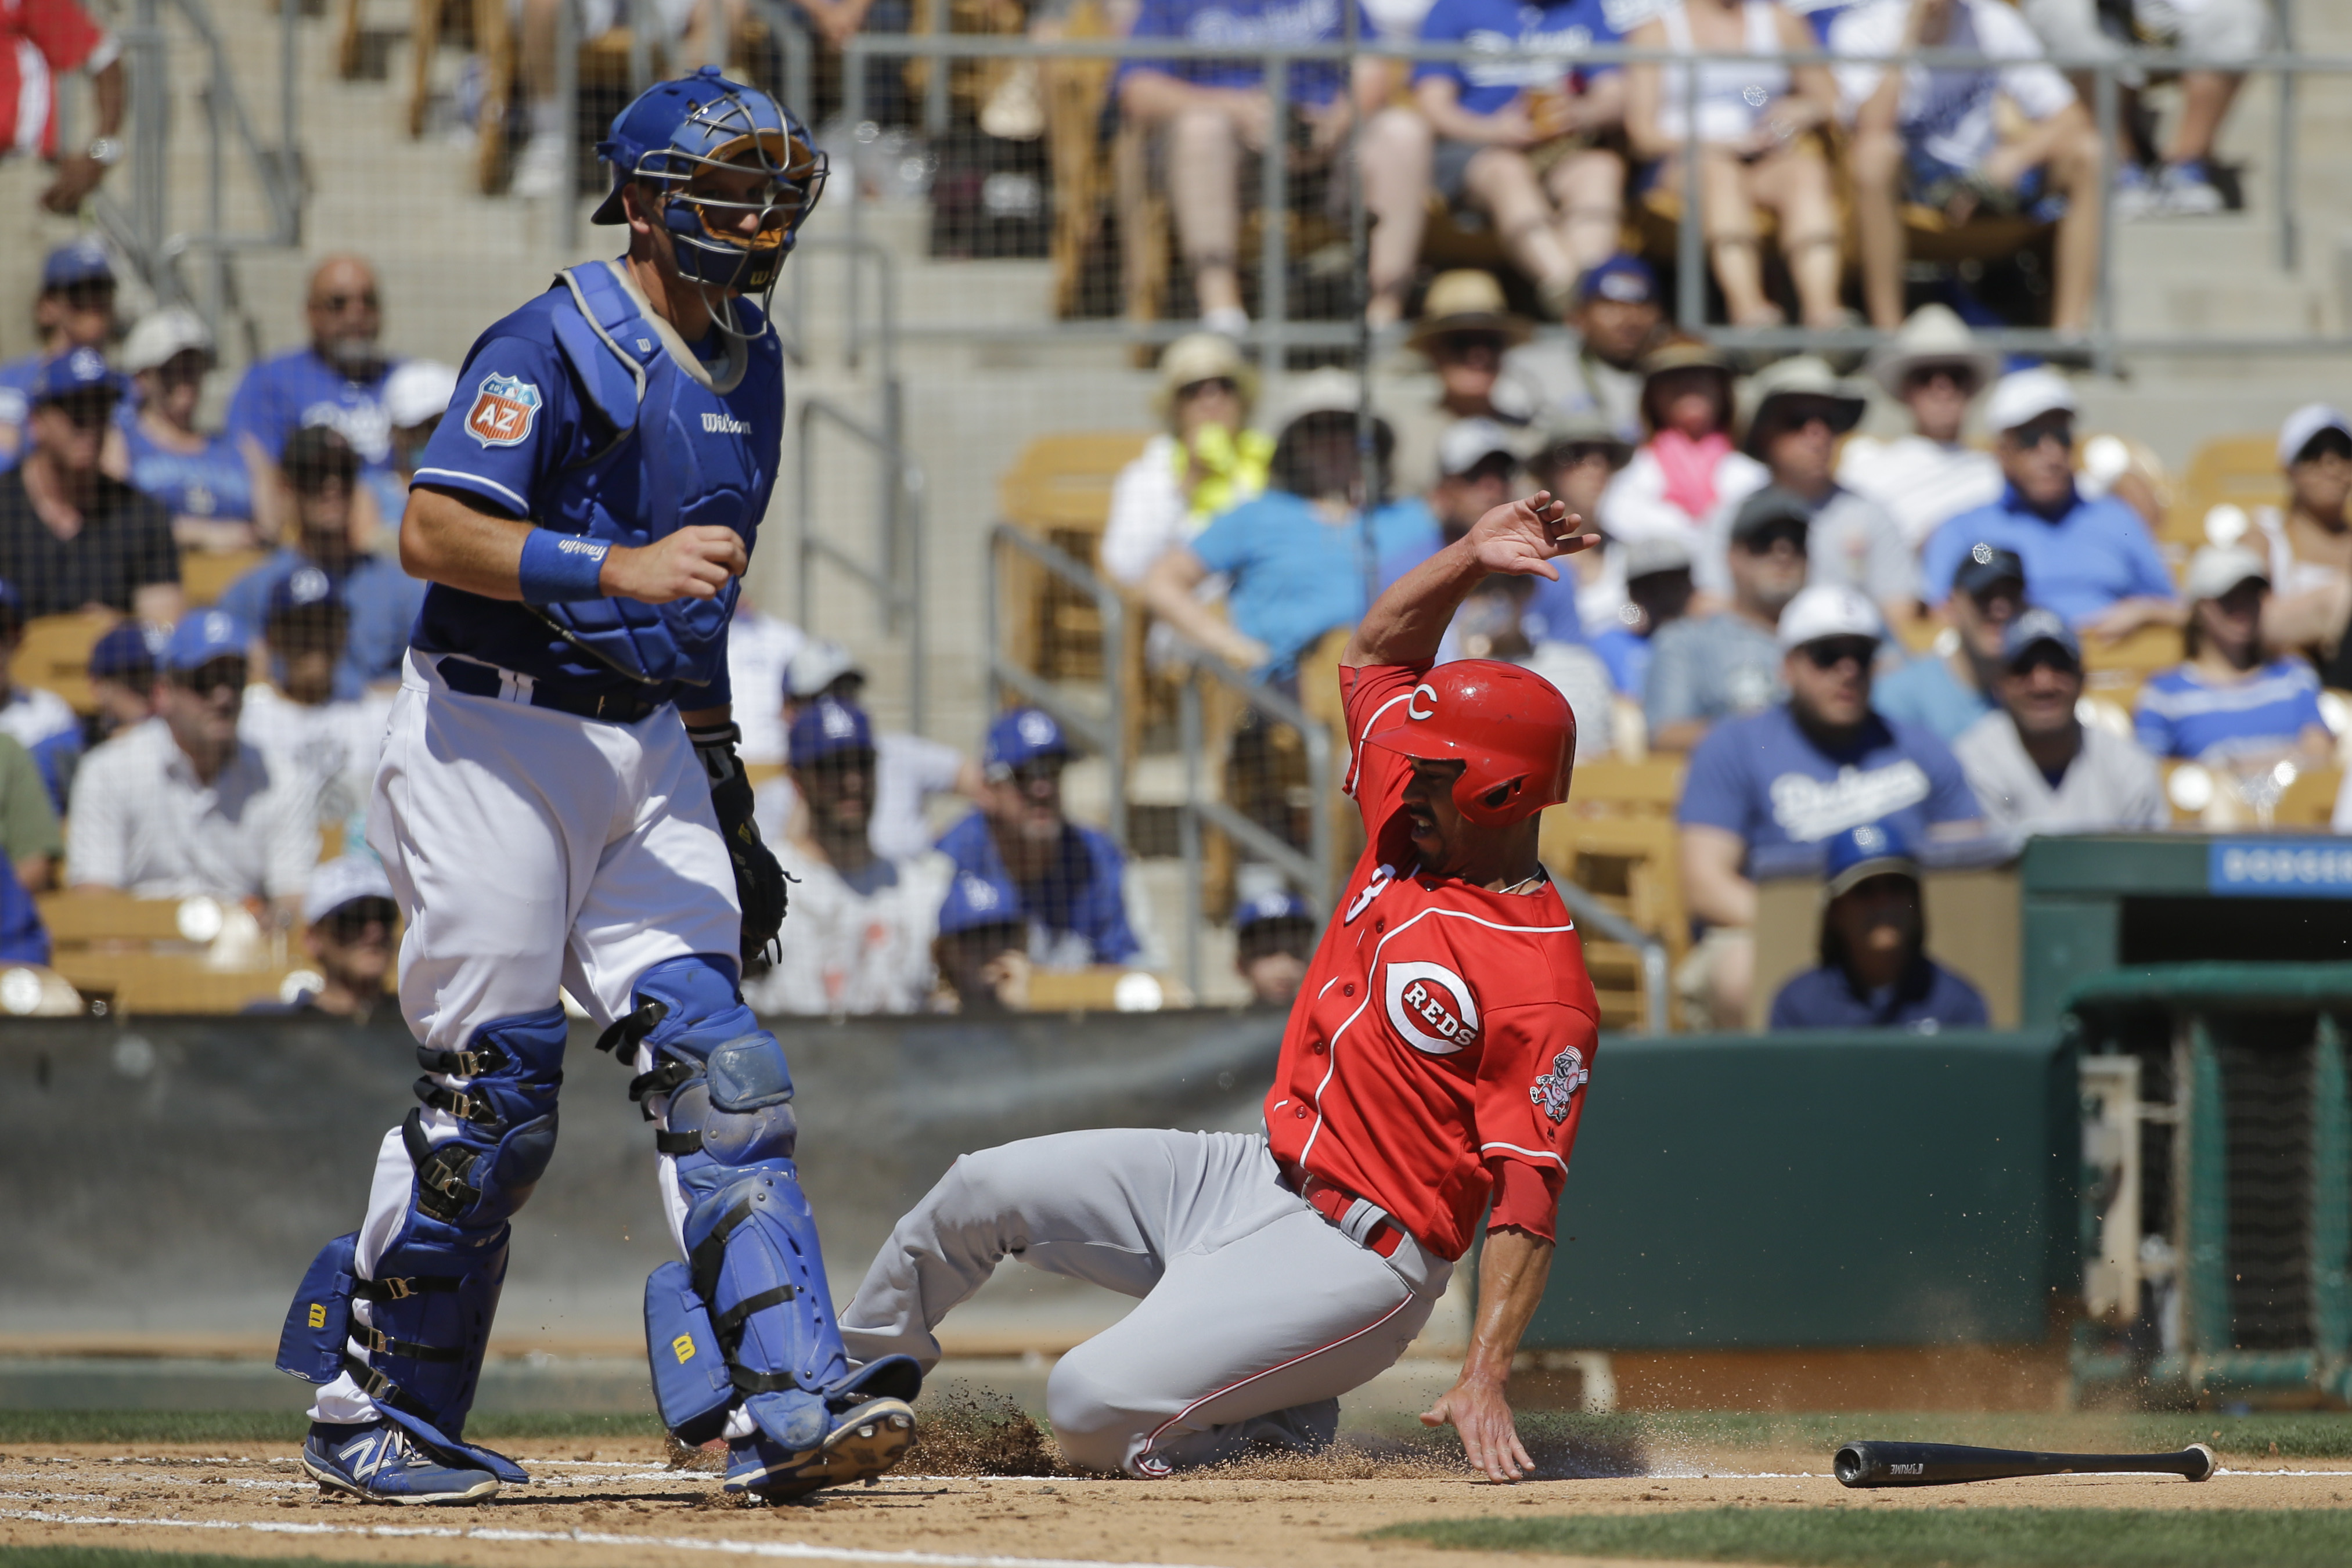 Los Angeles Dodgers catcher A.J. Ellis, left, watches as Cincinnati Reds' Ivan De Jesus Jr. slides into home plate to score on a throwing error by Los Angeles Dodgers' Chase Utley during the third inning of a spring training baseball game, Sunday, March 2